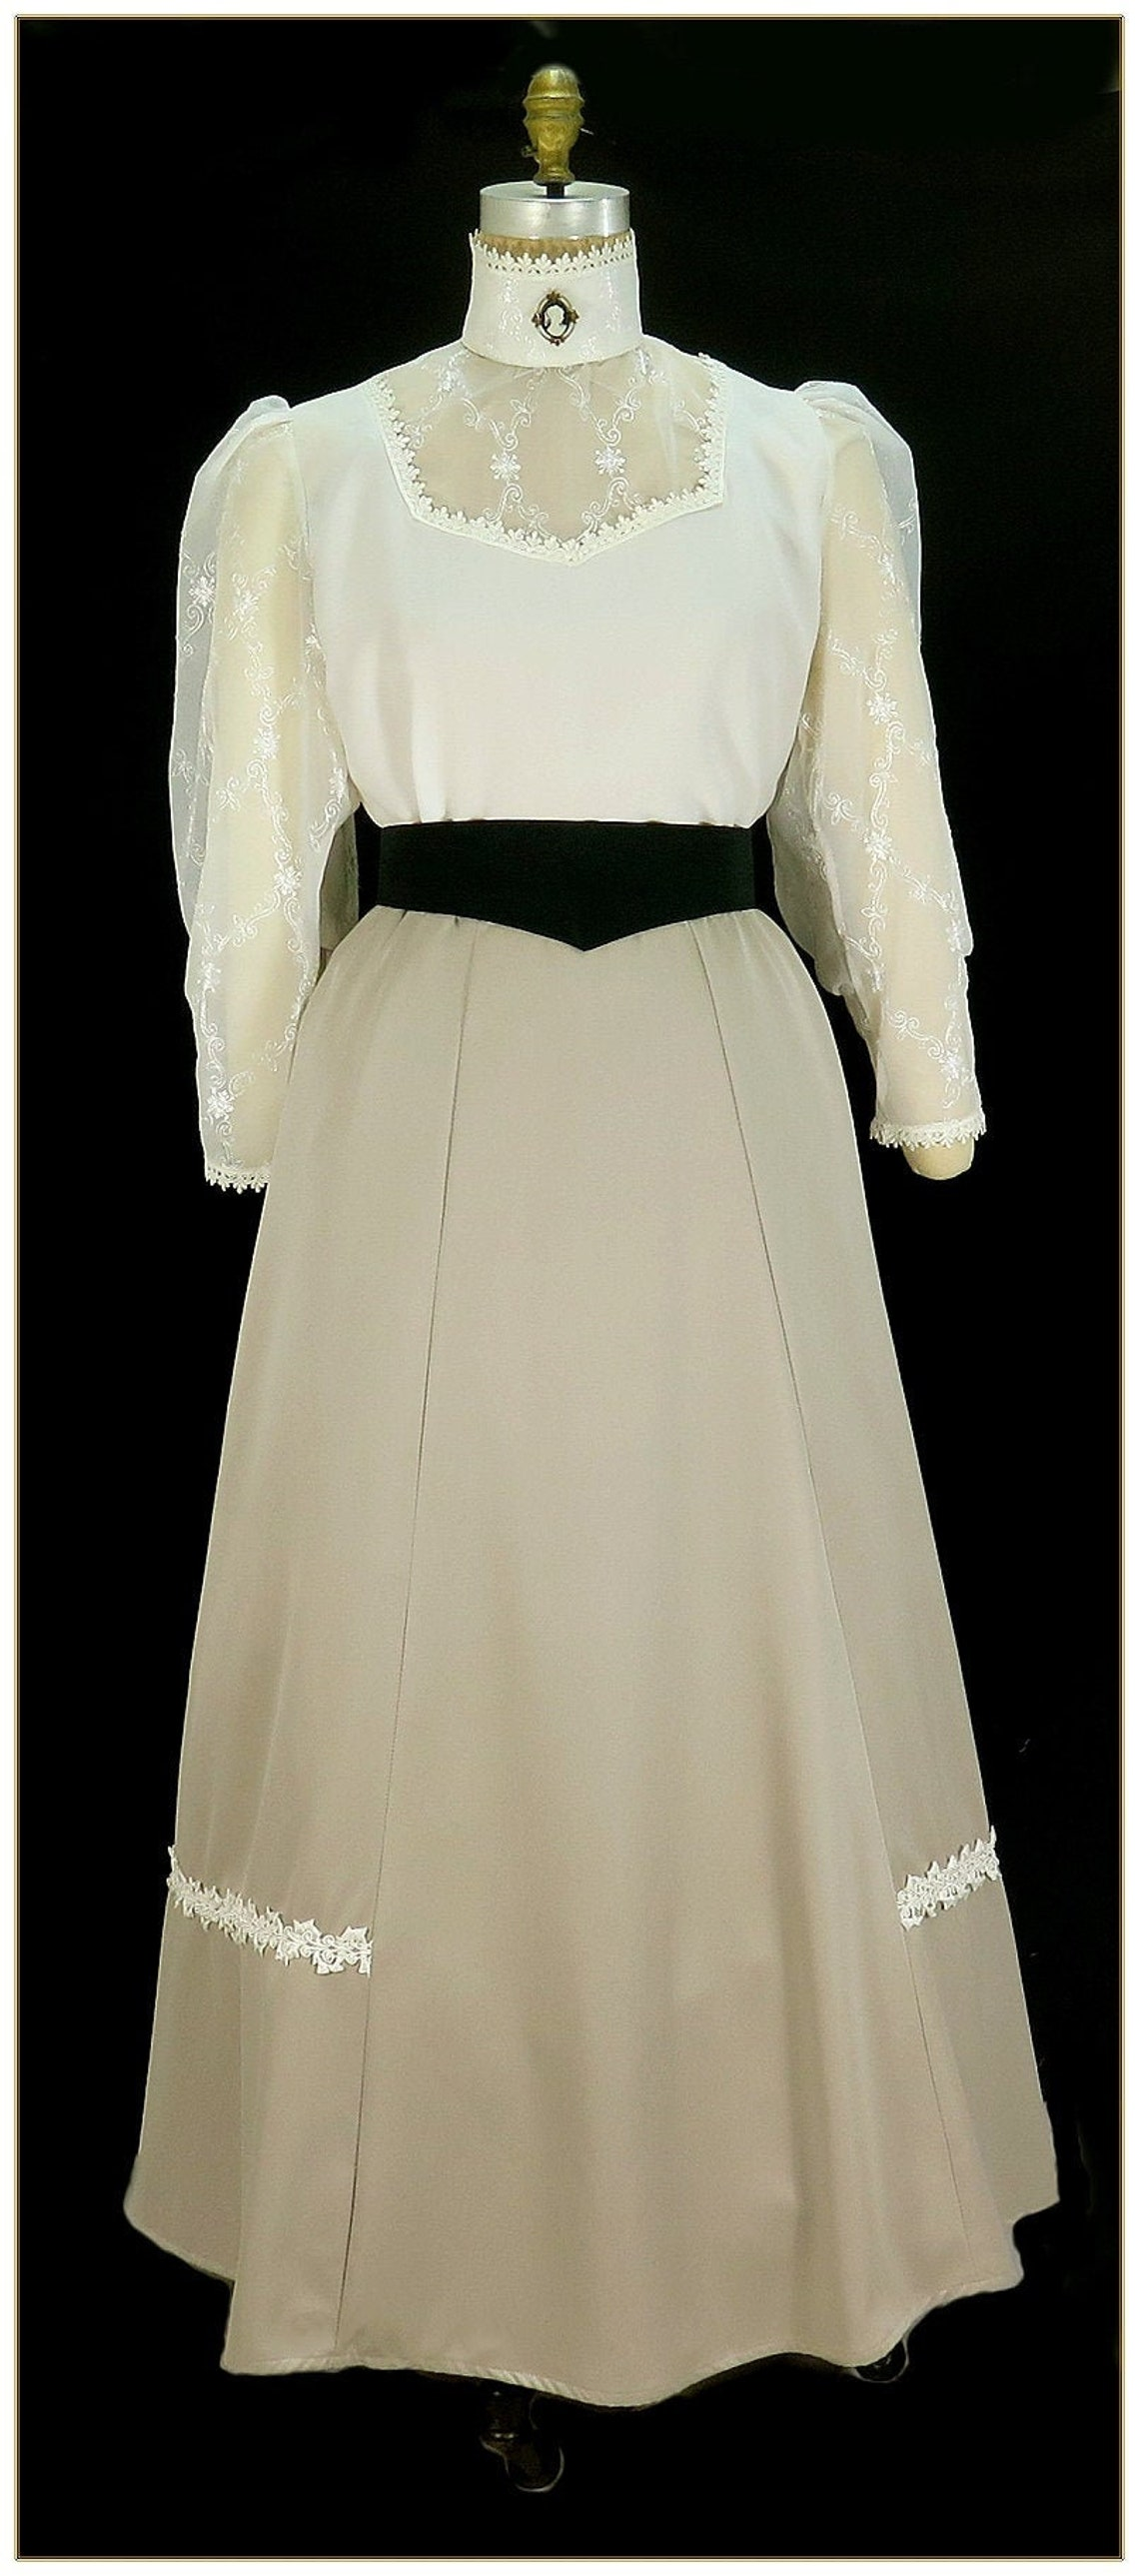 1920s Skirt History Victorian Taupe Gabardine Skirt $69.00 AT vintagedancer.com